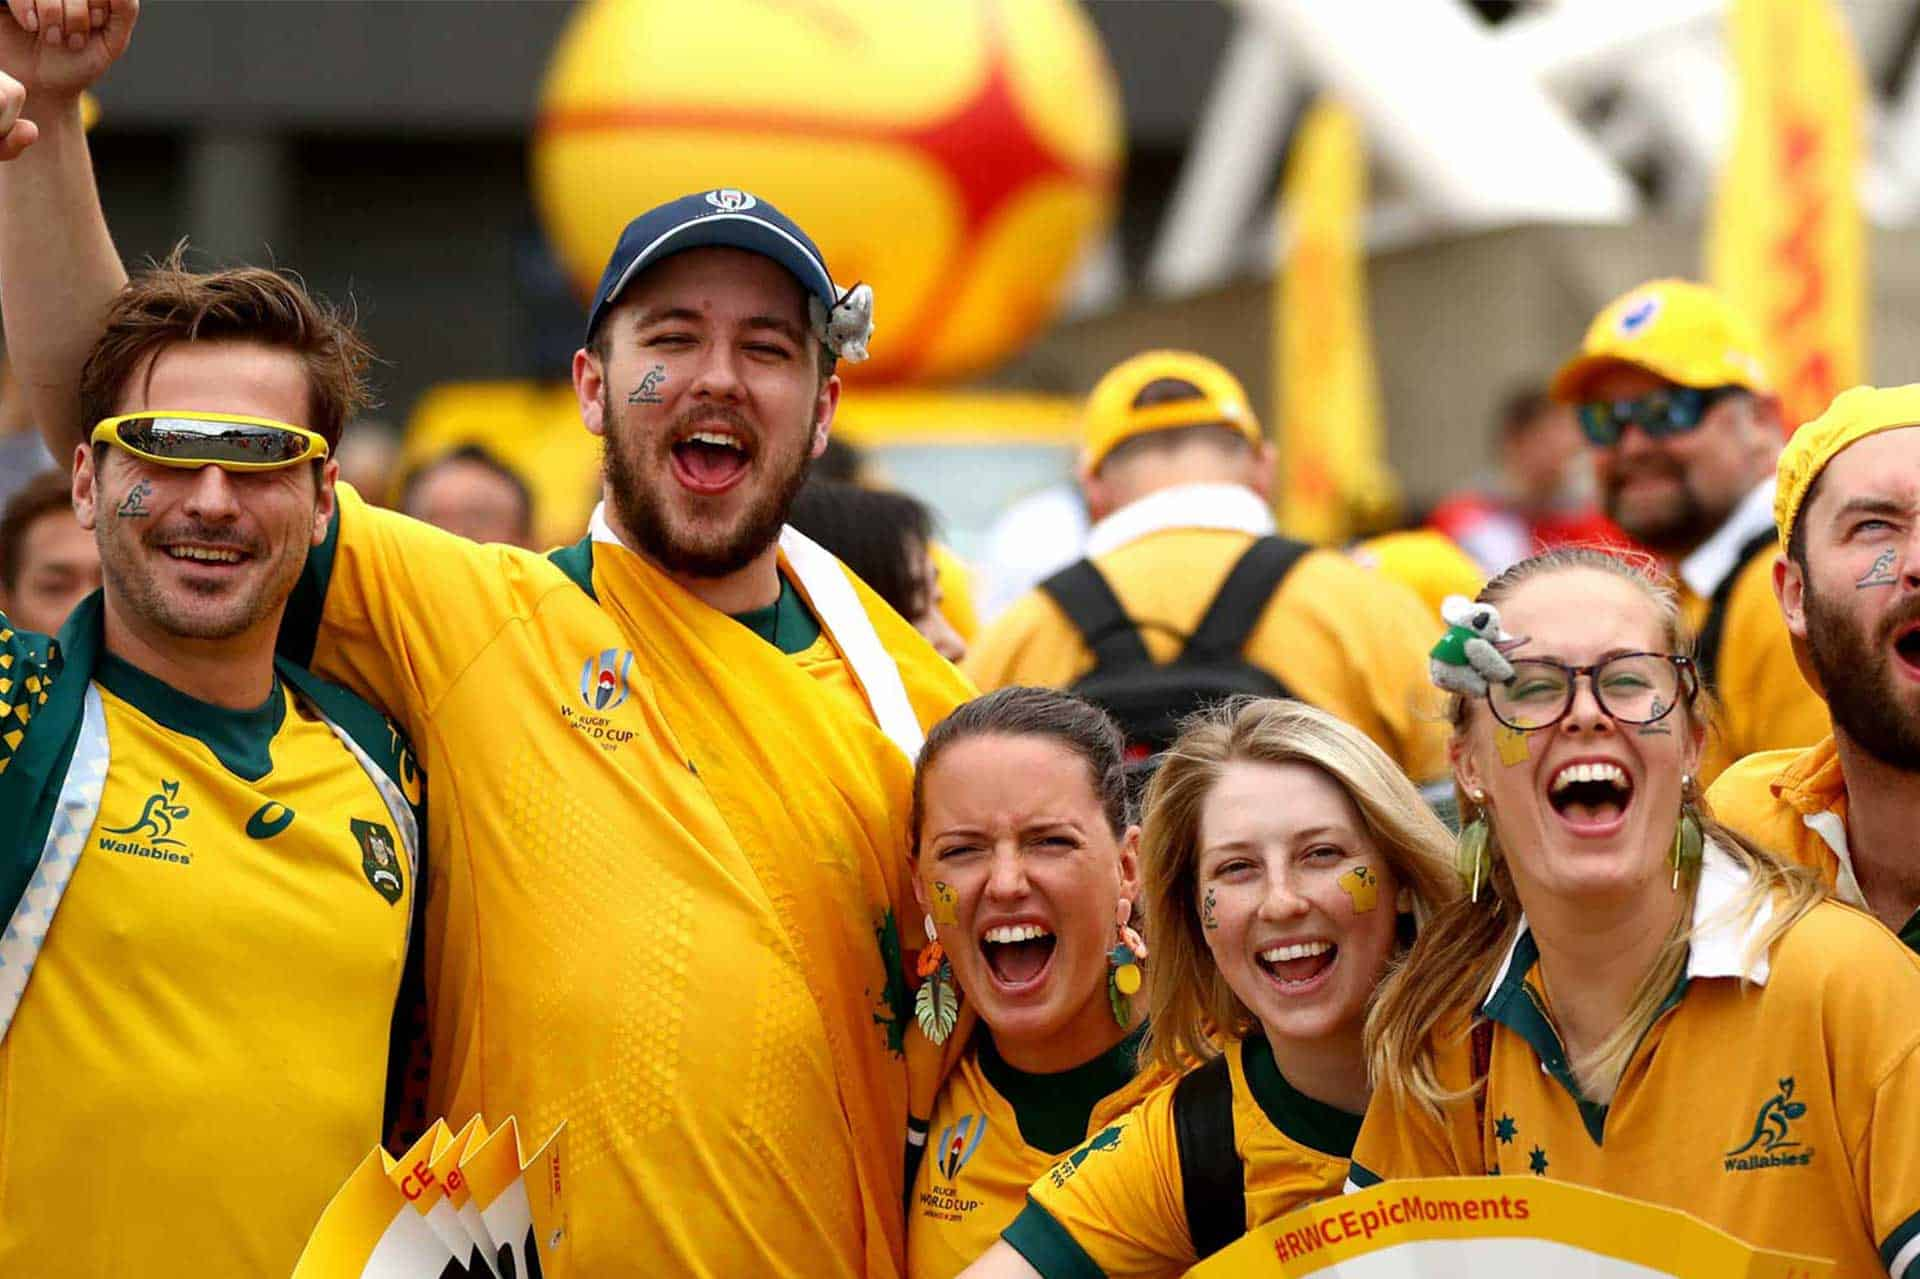 RWC 2023 Mastercard Promotion Group Booking Discount